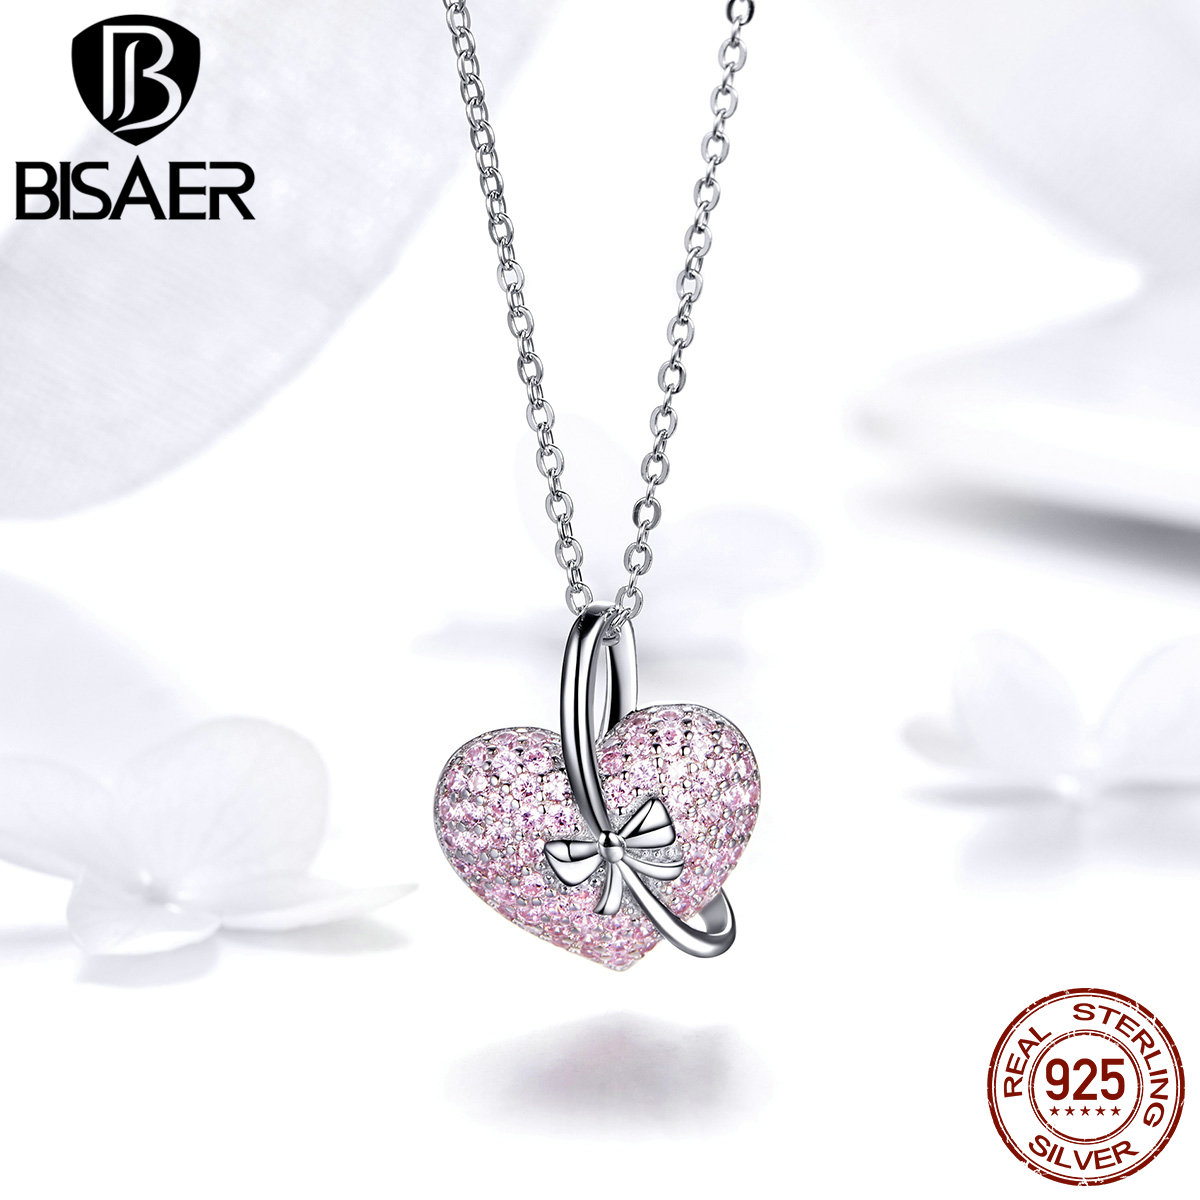 925 Silver Crystal Necklace Pendant Valentine Day Gifts For Her Girlfriend Women